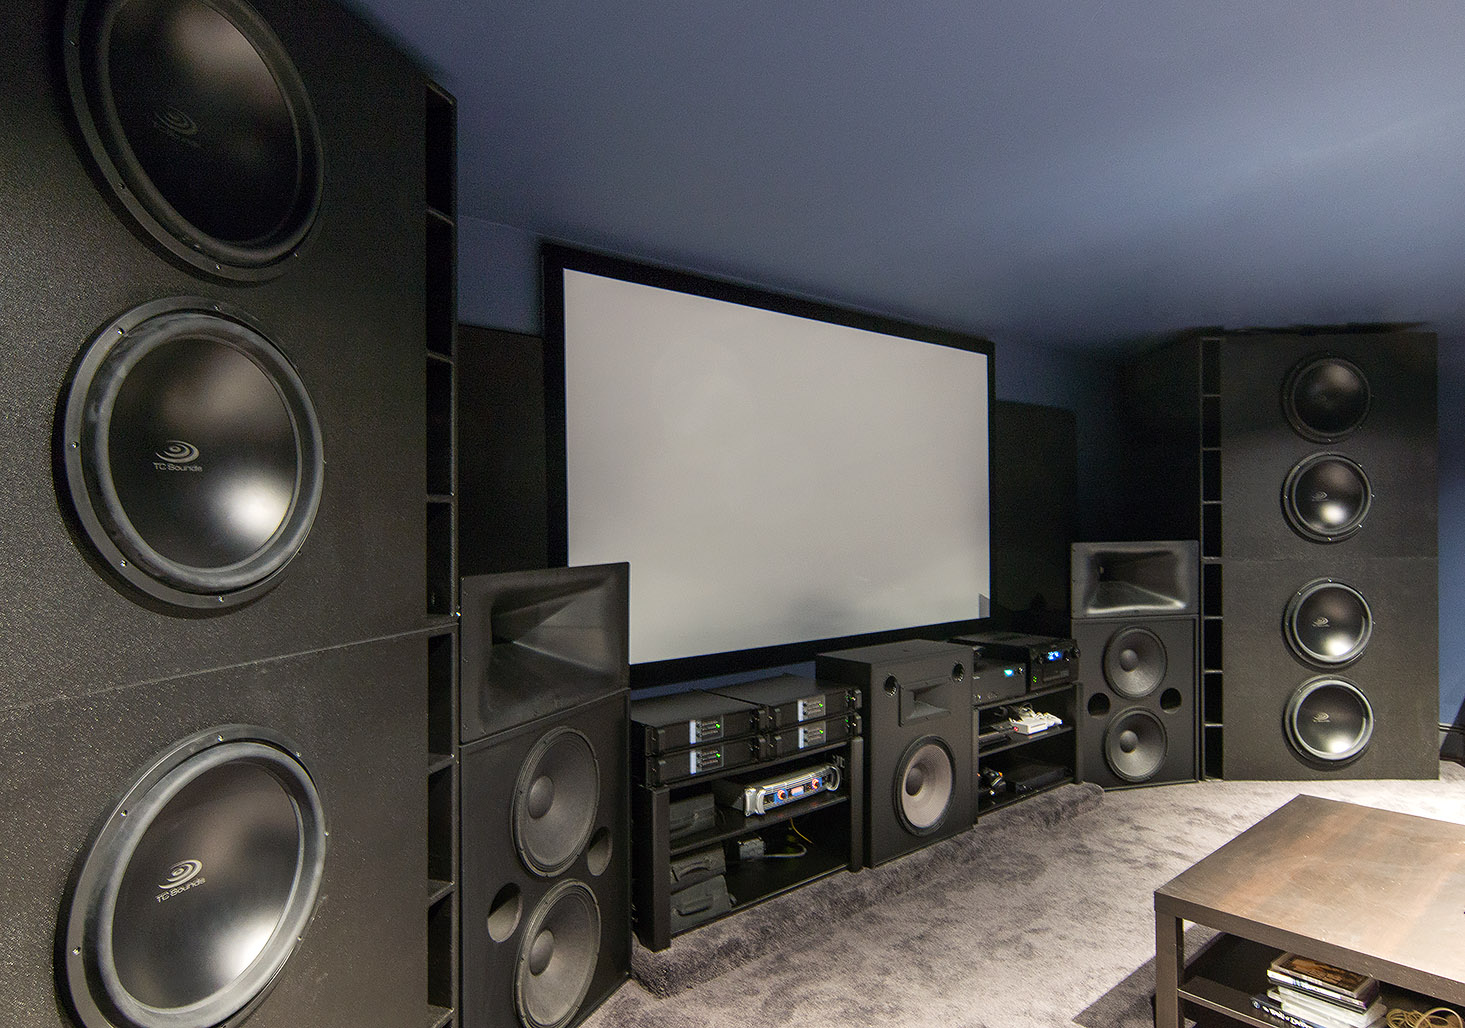 Official jtr speakers subwoofer thread page 80 avs forum home theater discussions and reviews